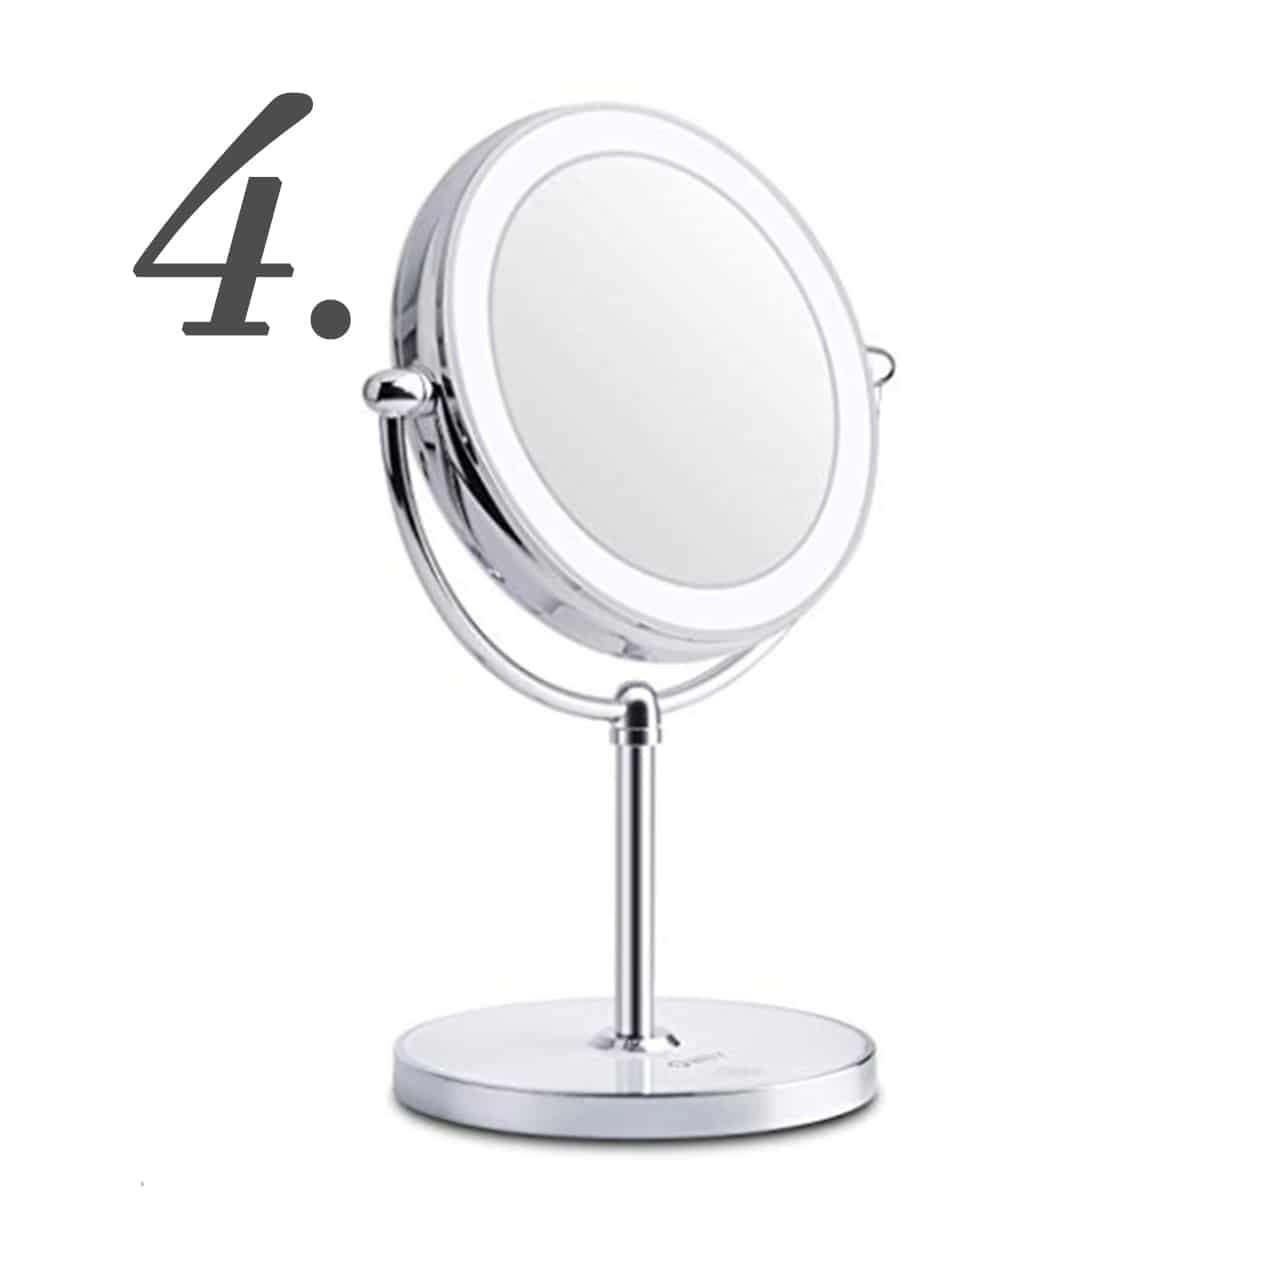 Lighted Makeup Mirror | www.ashleybrookedesigns.com